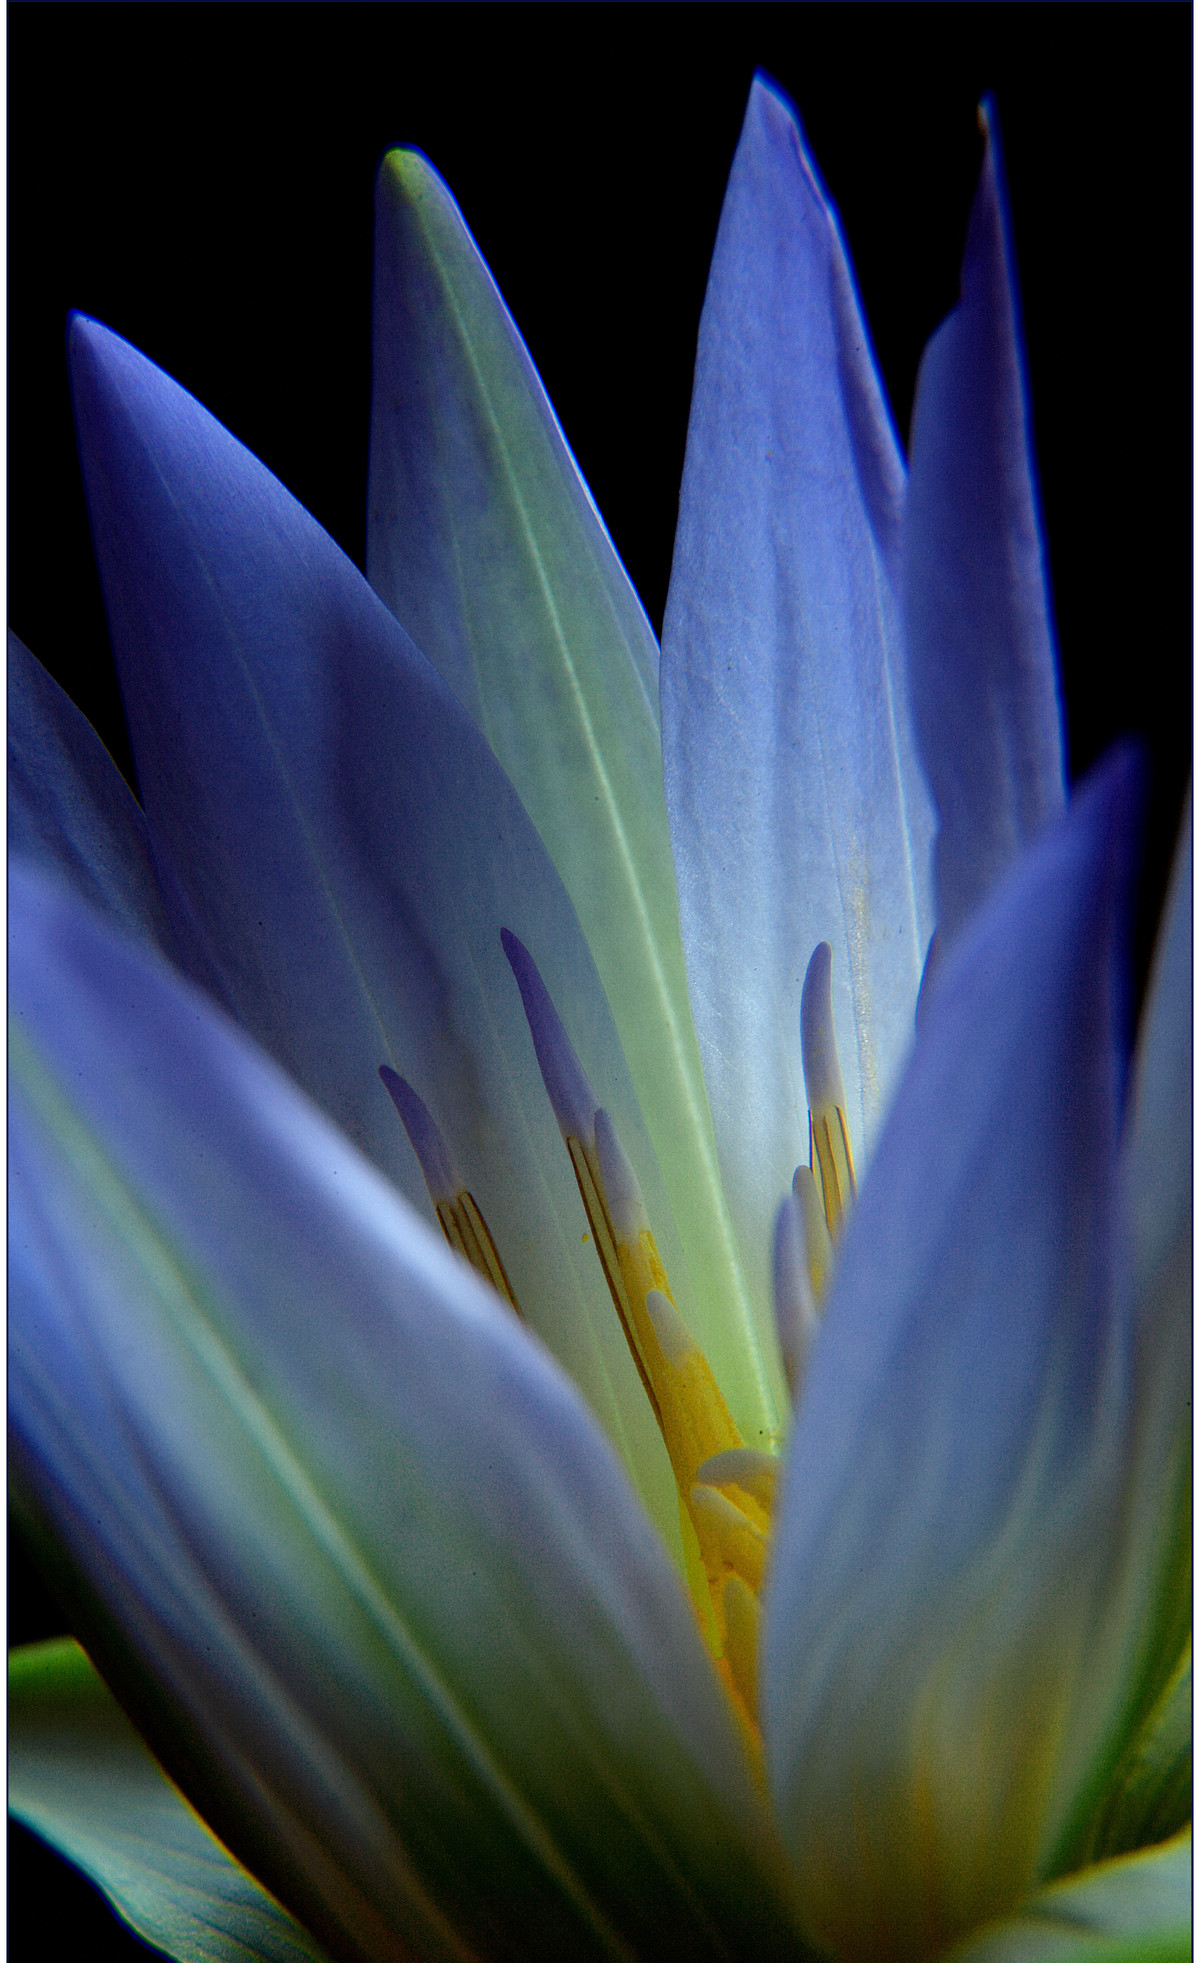 Lotus by Saify Akolawala, Image Photography, Digital Print on Archival Paper, Blue color